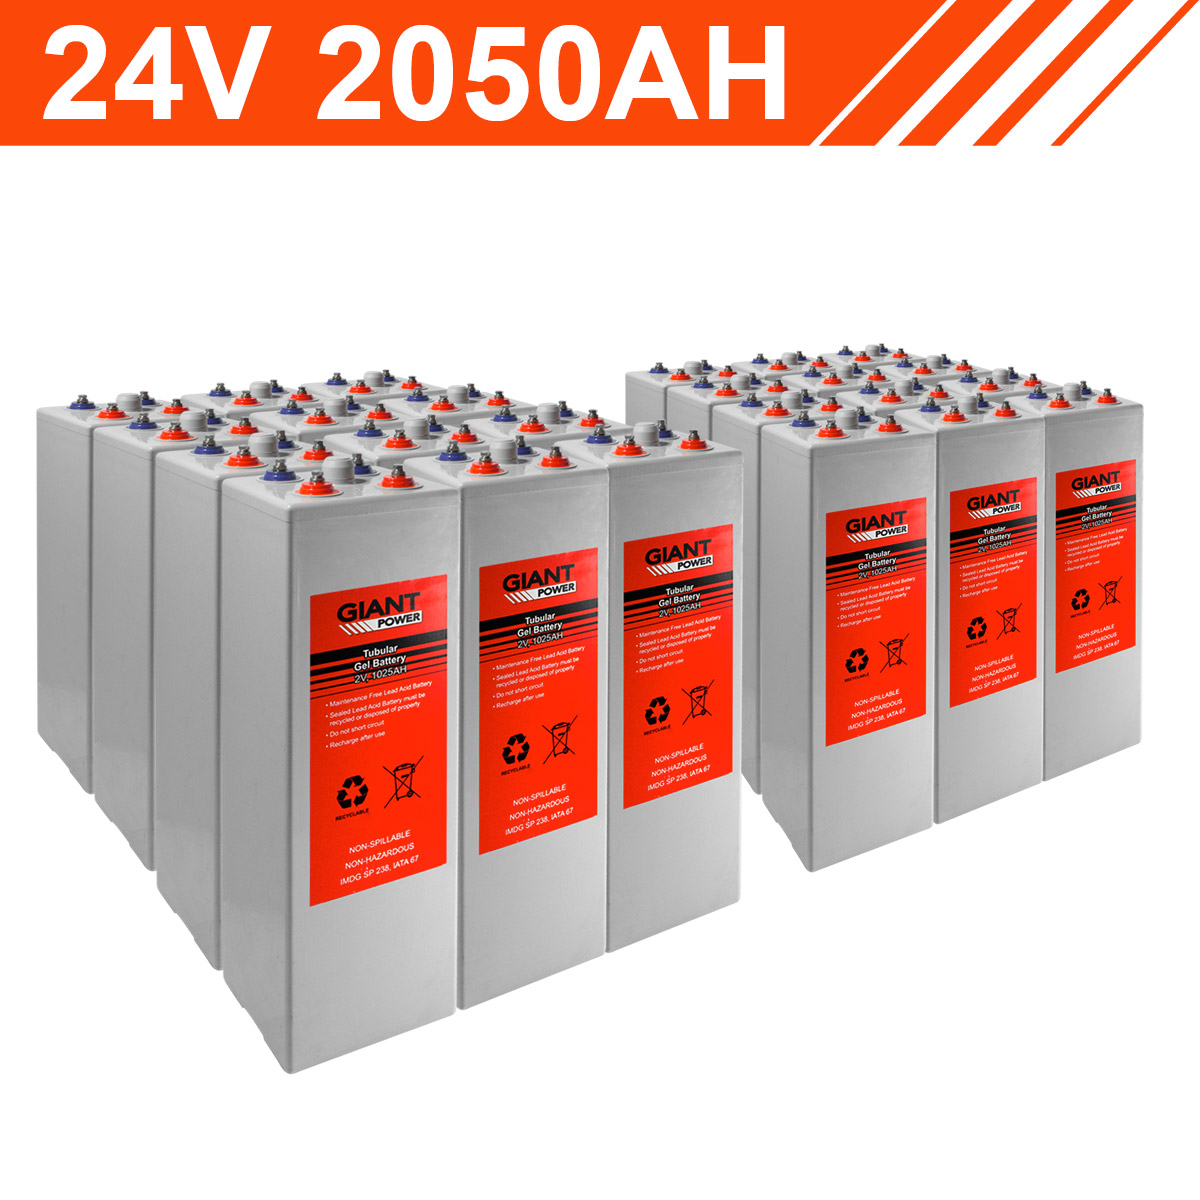 24v 2050ah Tubular Gel Battery Bank